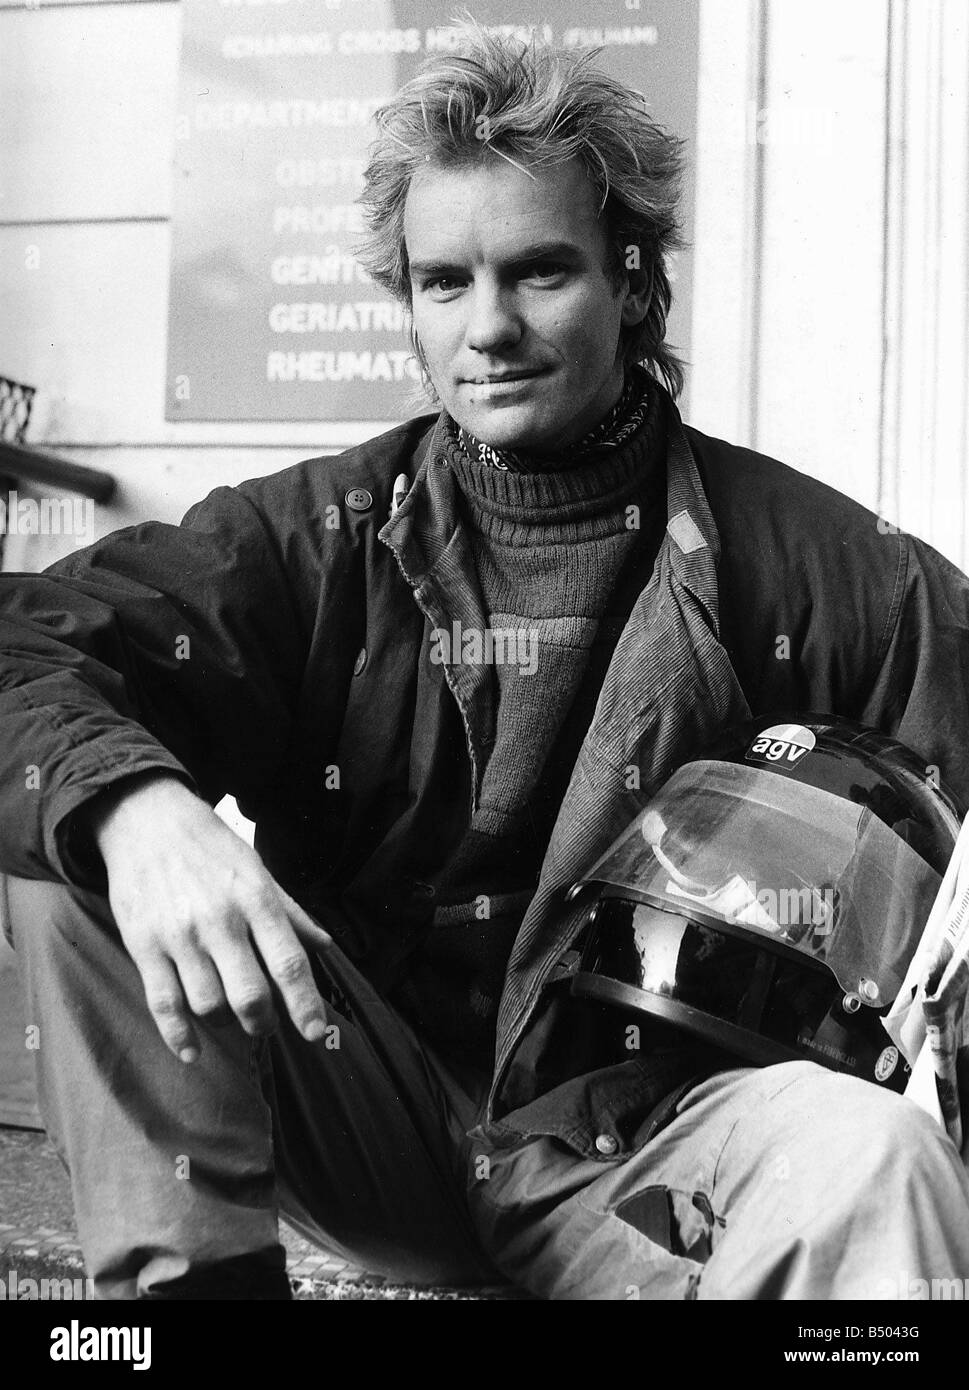 Sting singer with pop group Police aka Gordon Sumner 1984 Stock Photo